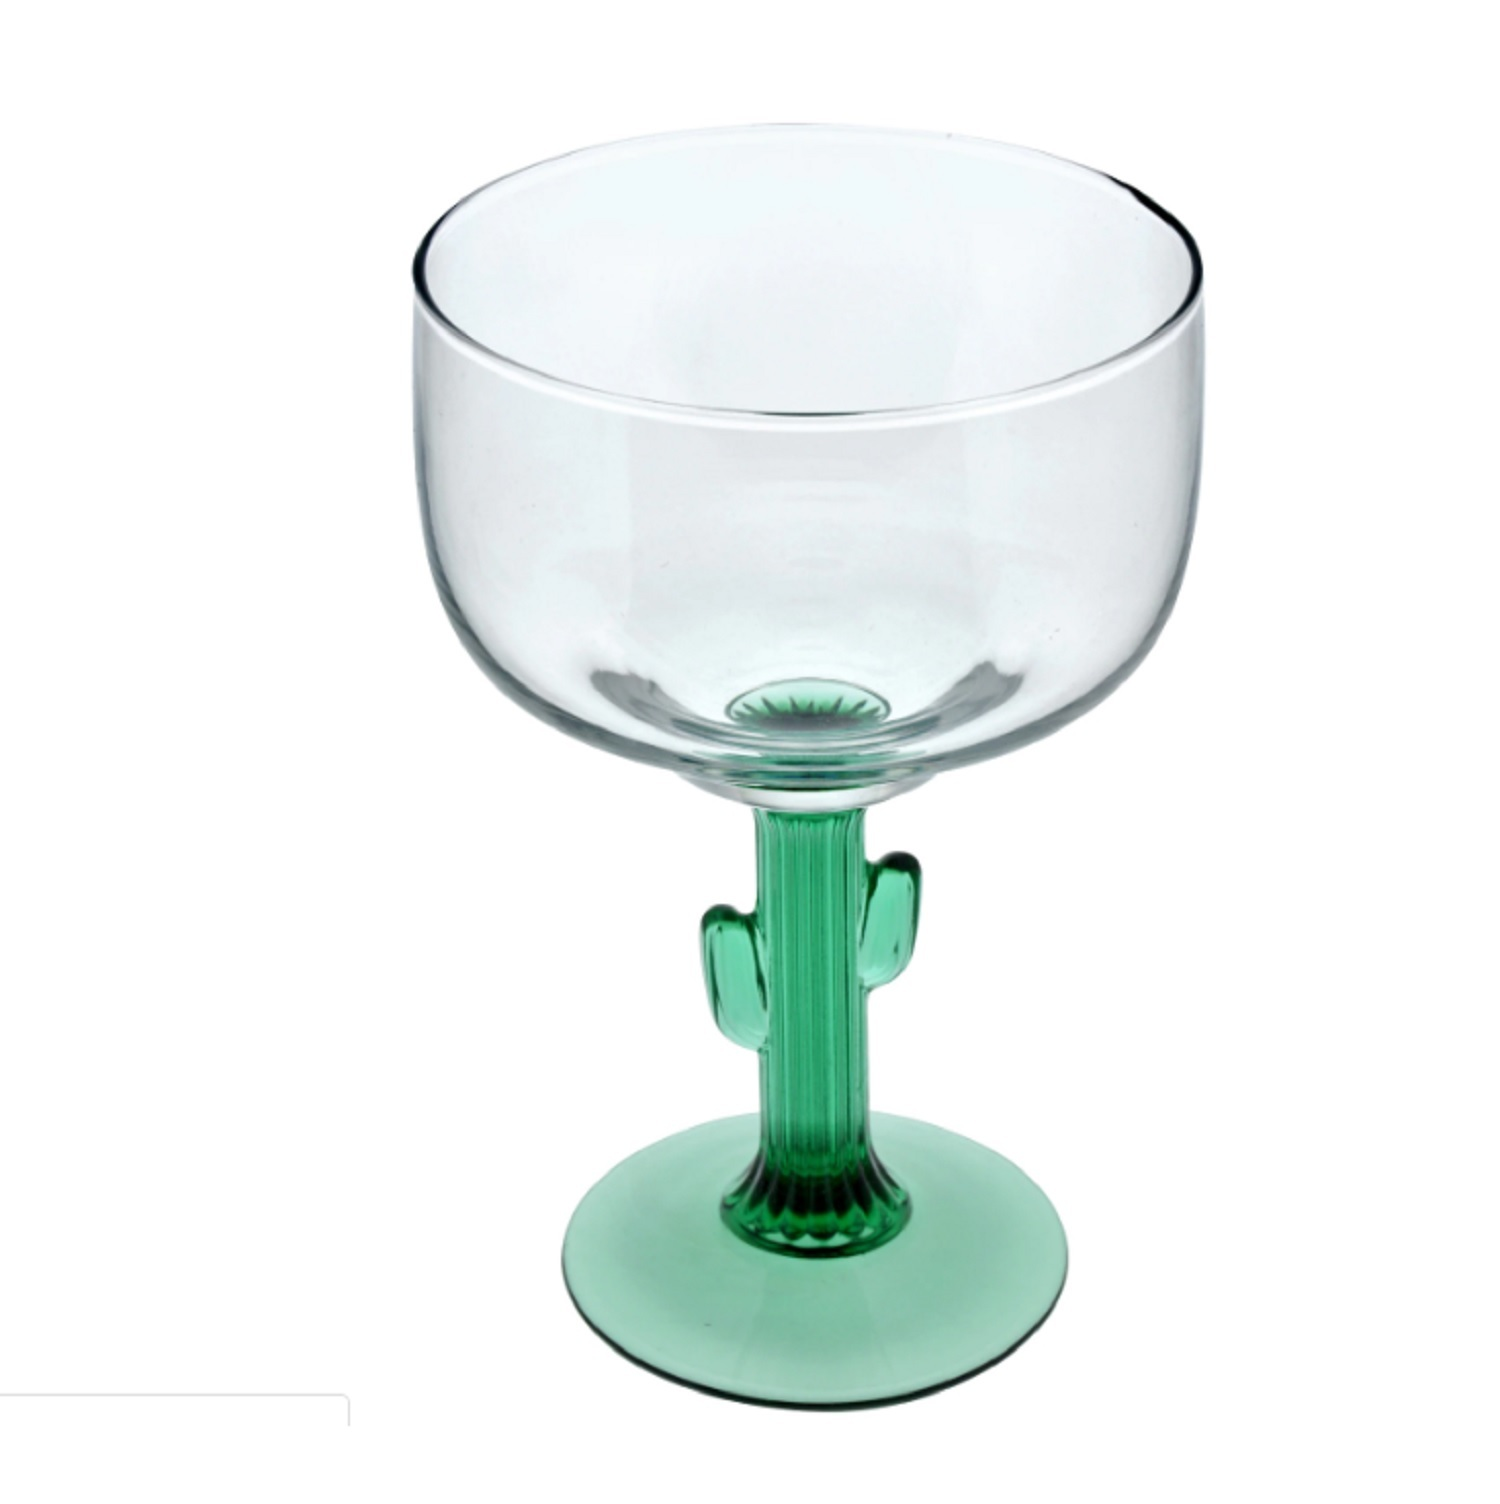 Primary image for Cactus Margarita Glass, Green Cactus Stemmed, 16oz for Succulent Lover